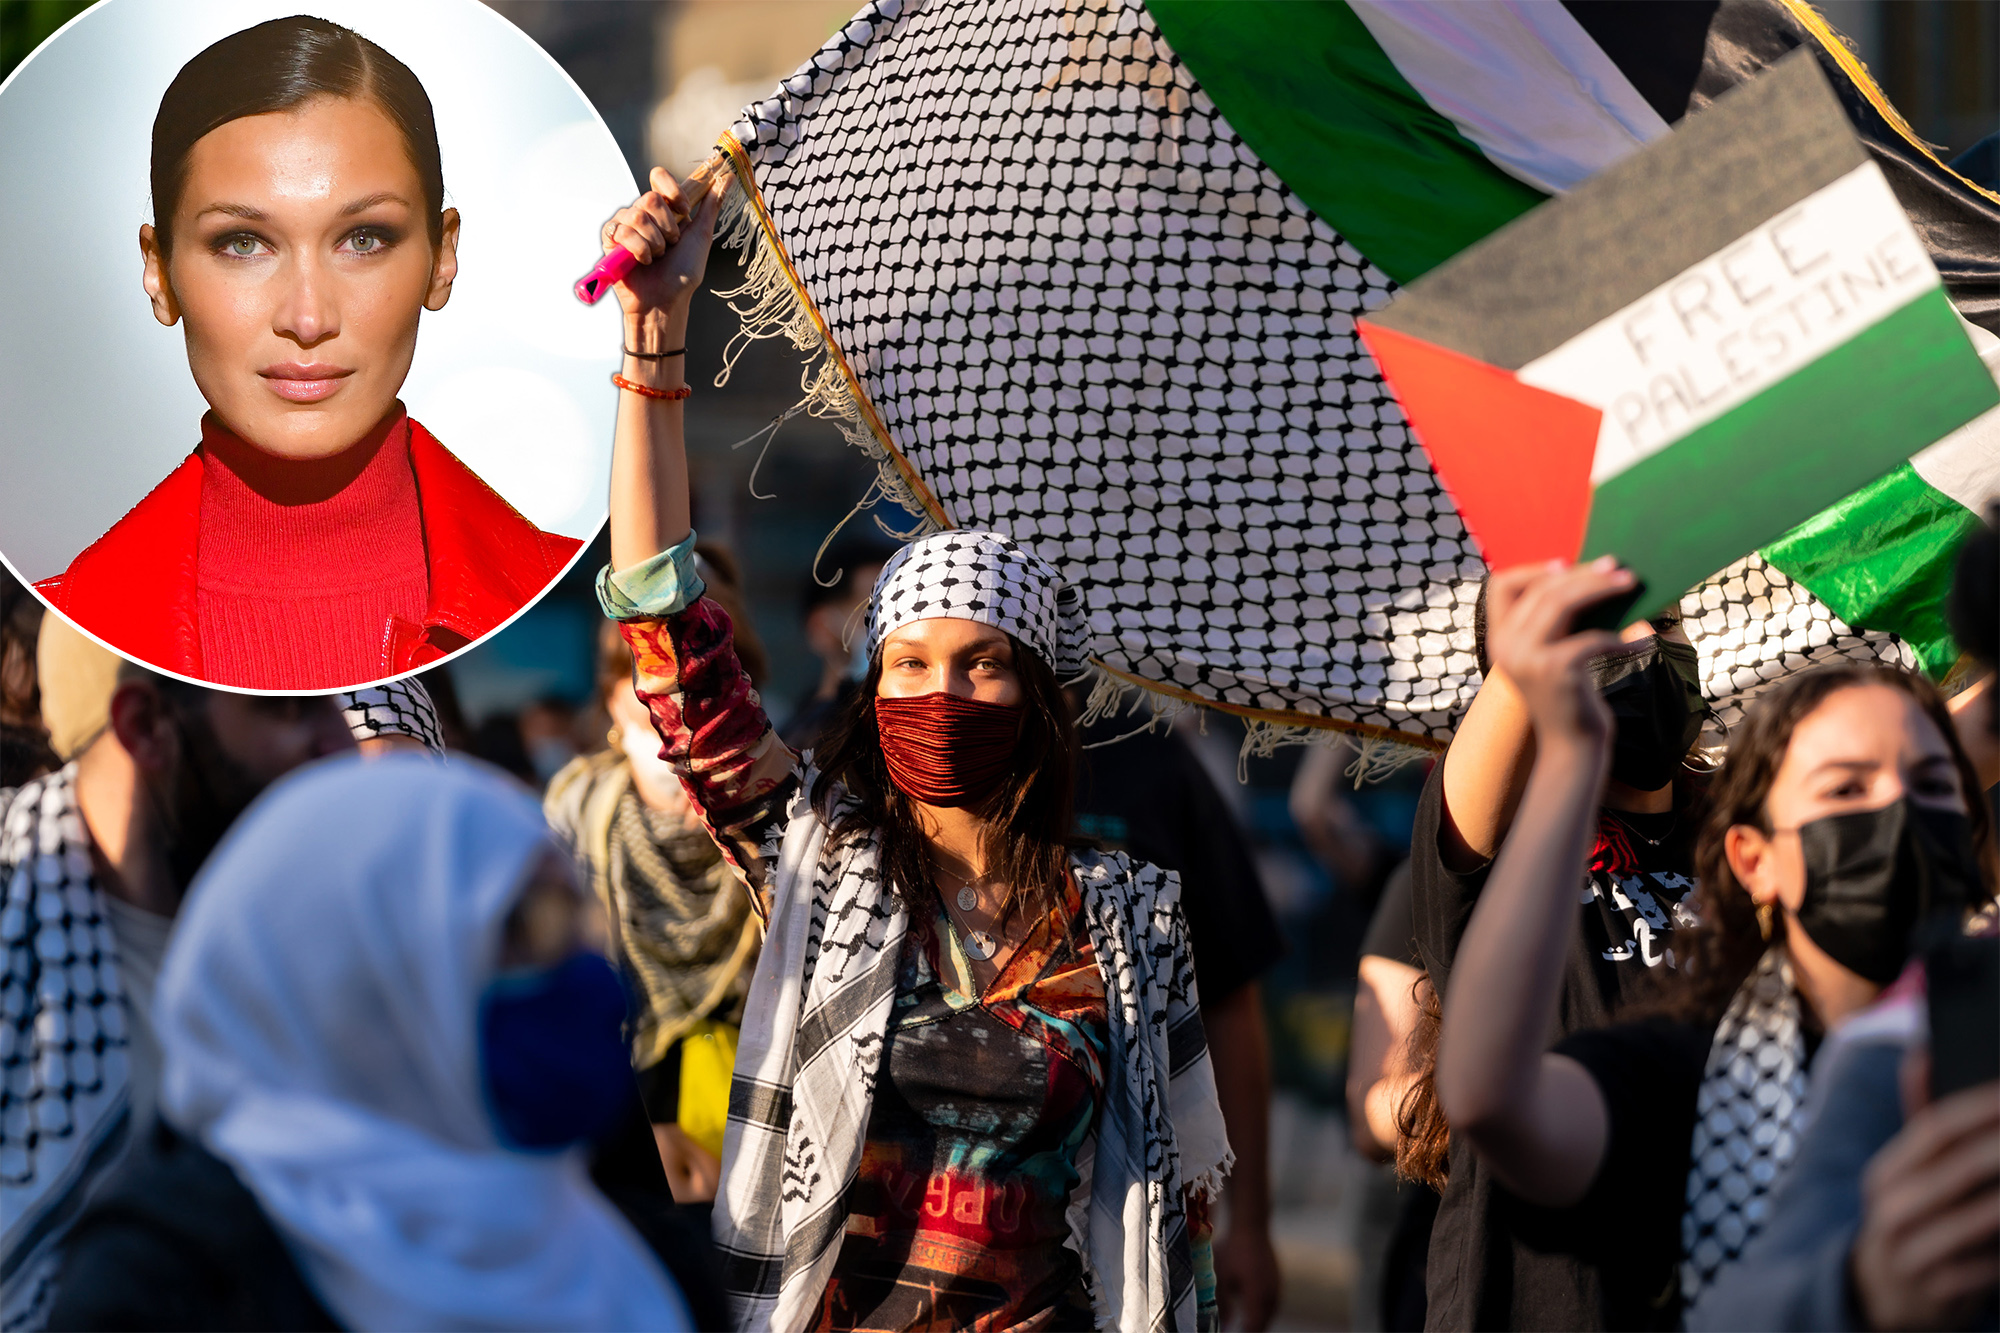 Israel blasts Bella Hadid for joining pro-Palestinian march